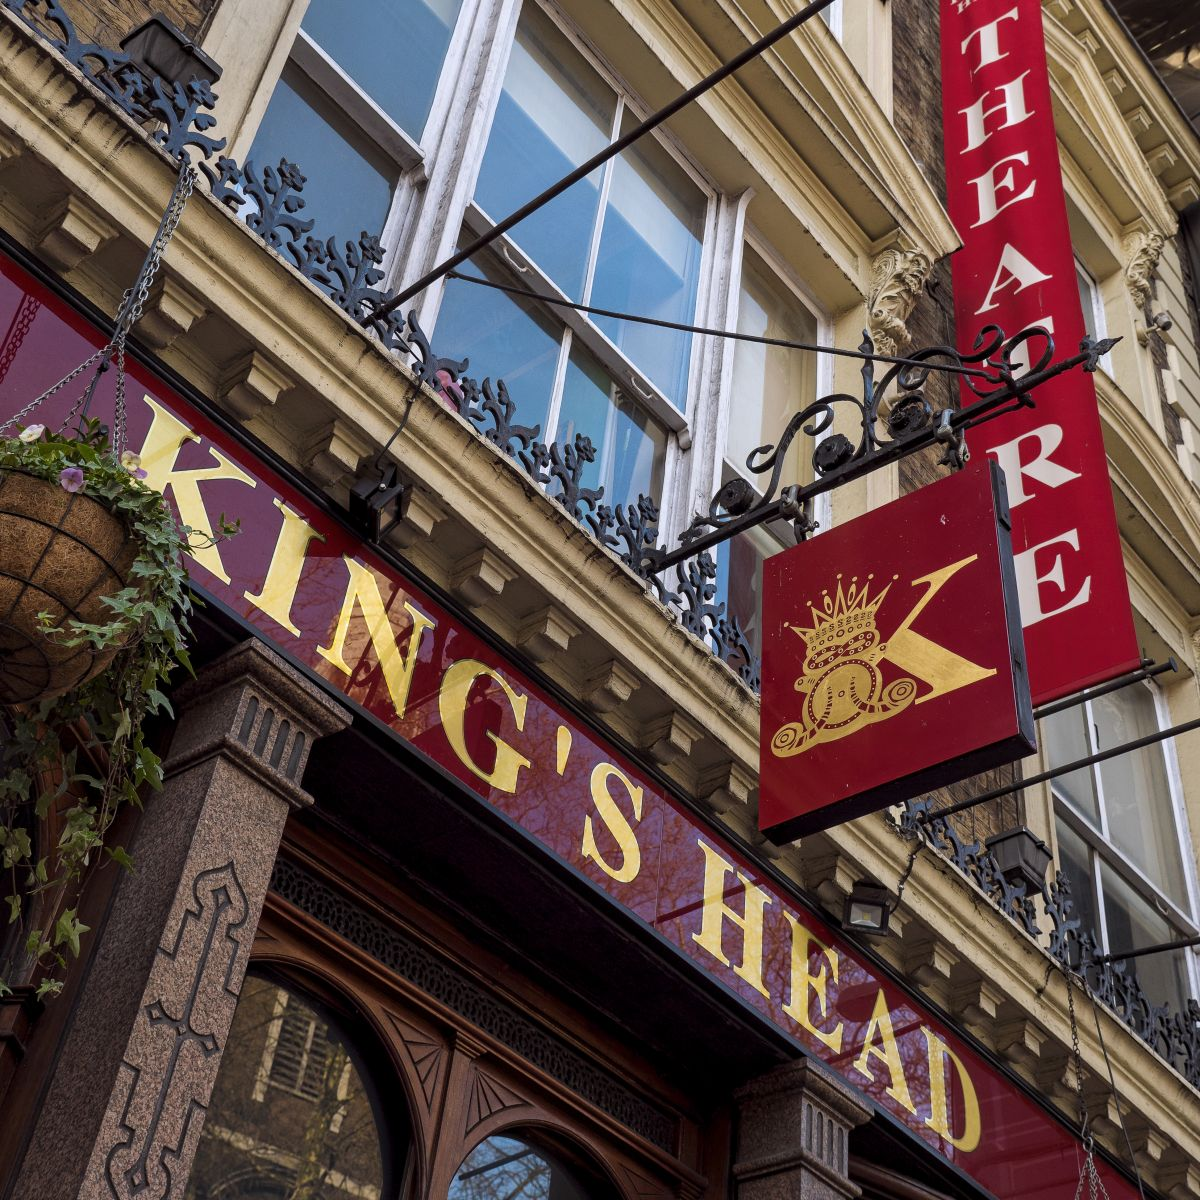 A Statement from the King's Head Theatre March 2020